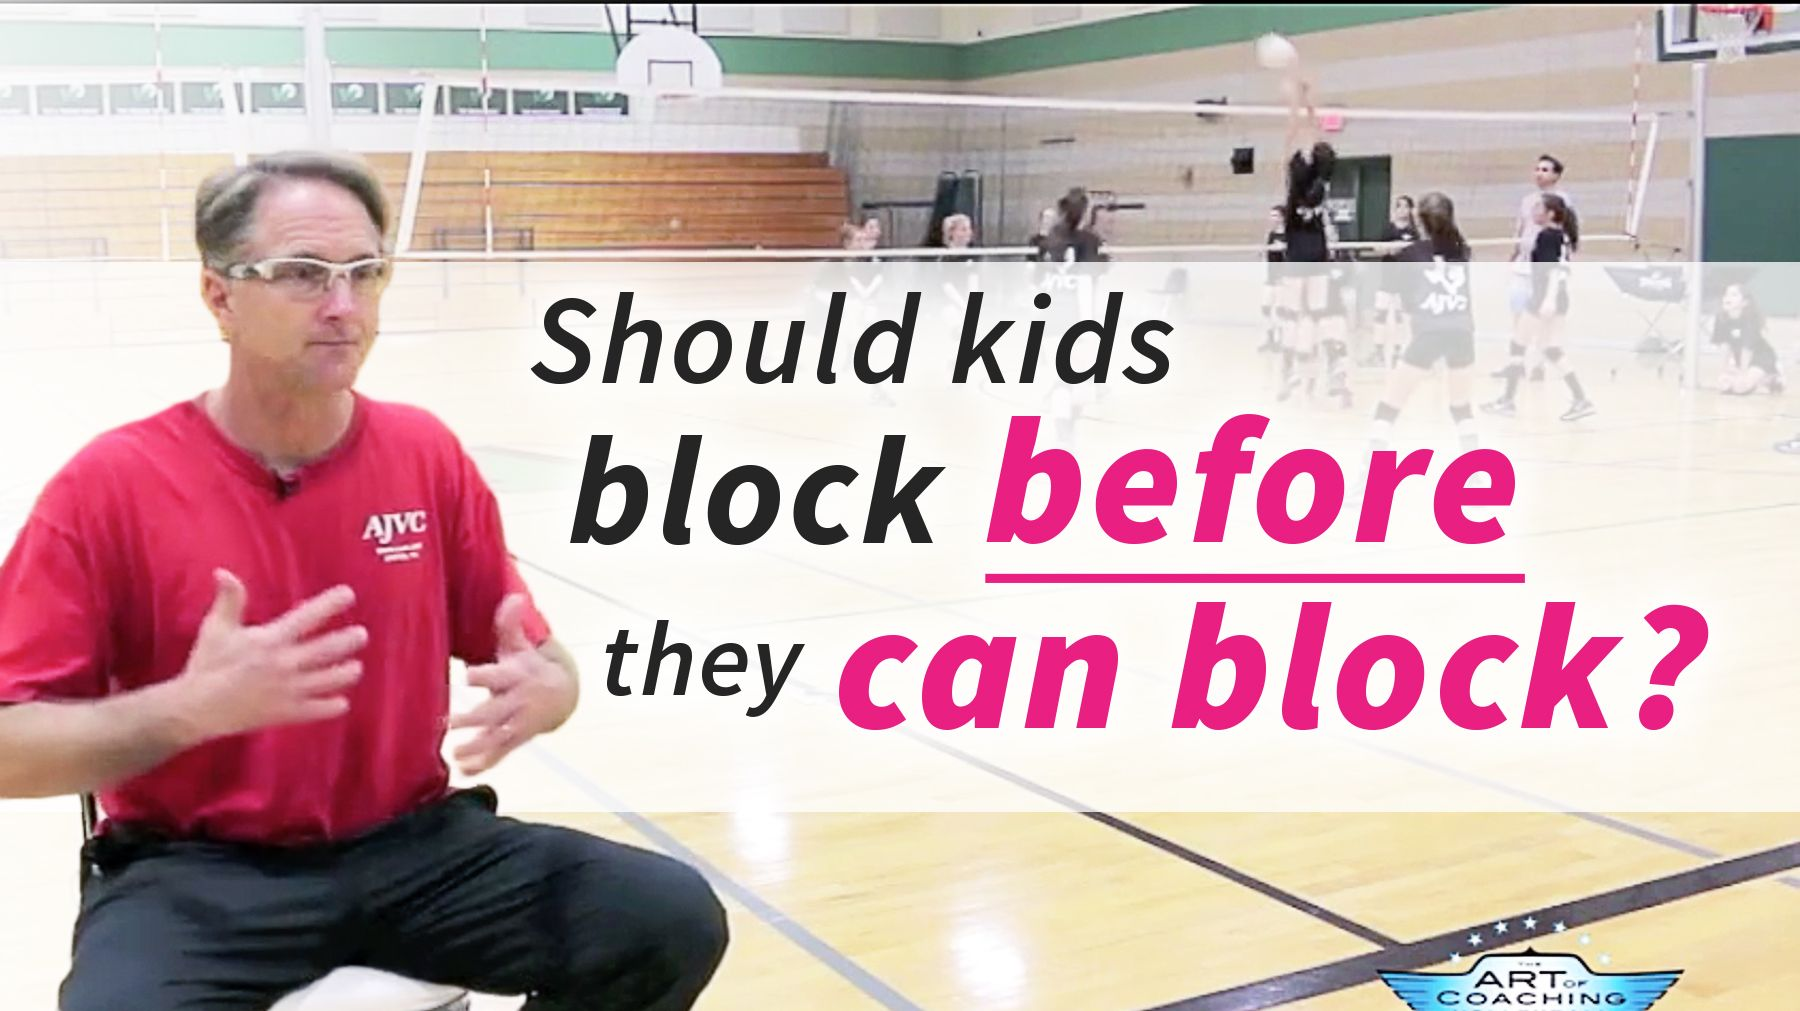 Should Kids Block Before They Can Block With Images Kids Blocks Teaching Skills Coaching Volleyball